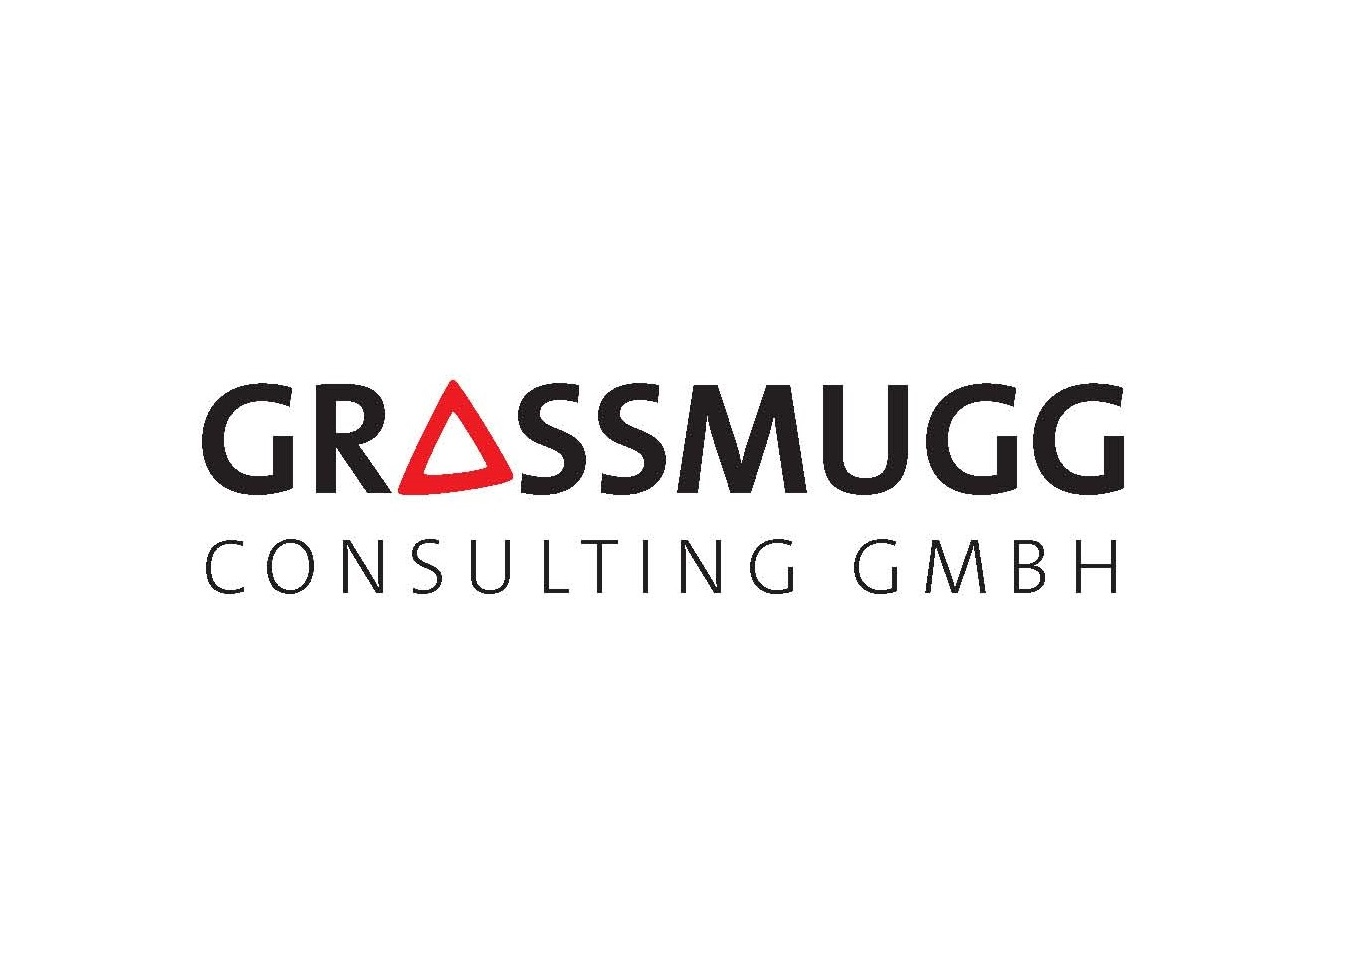 Grassmugg Consulting